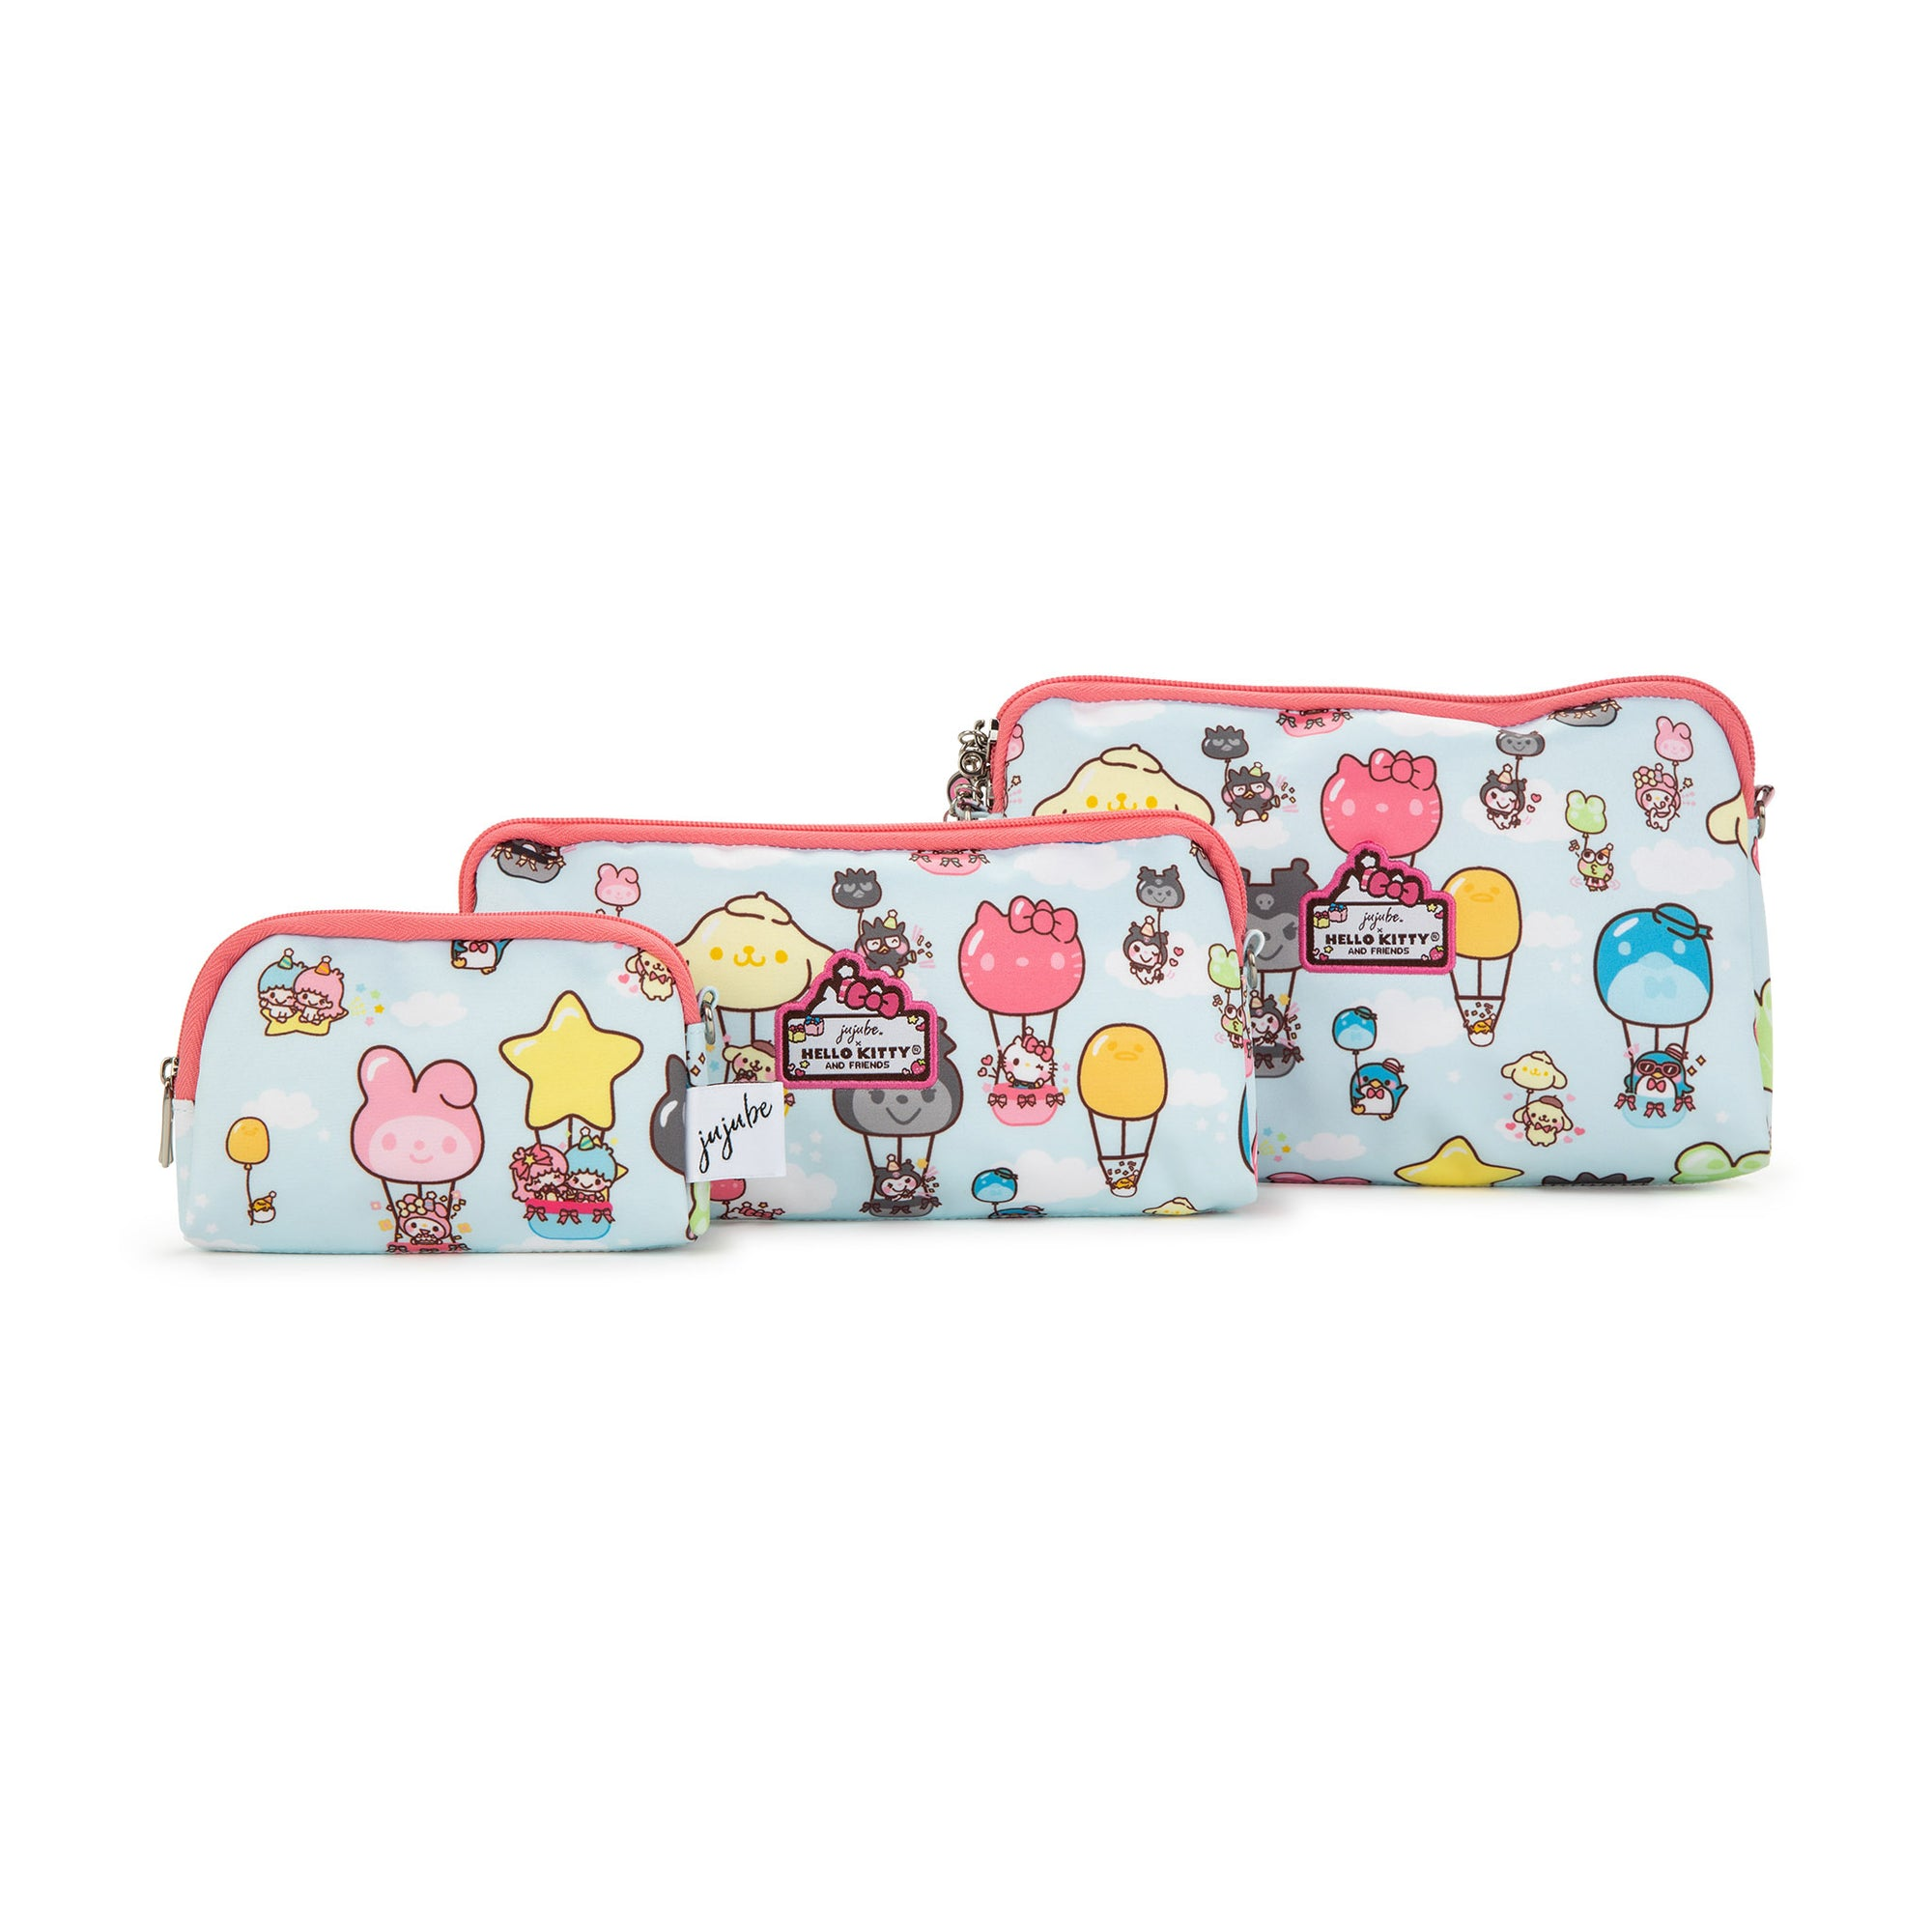 Sanrio x JuJuBe Party In The Sky Be Set Pouches